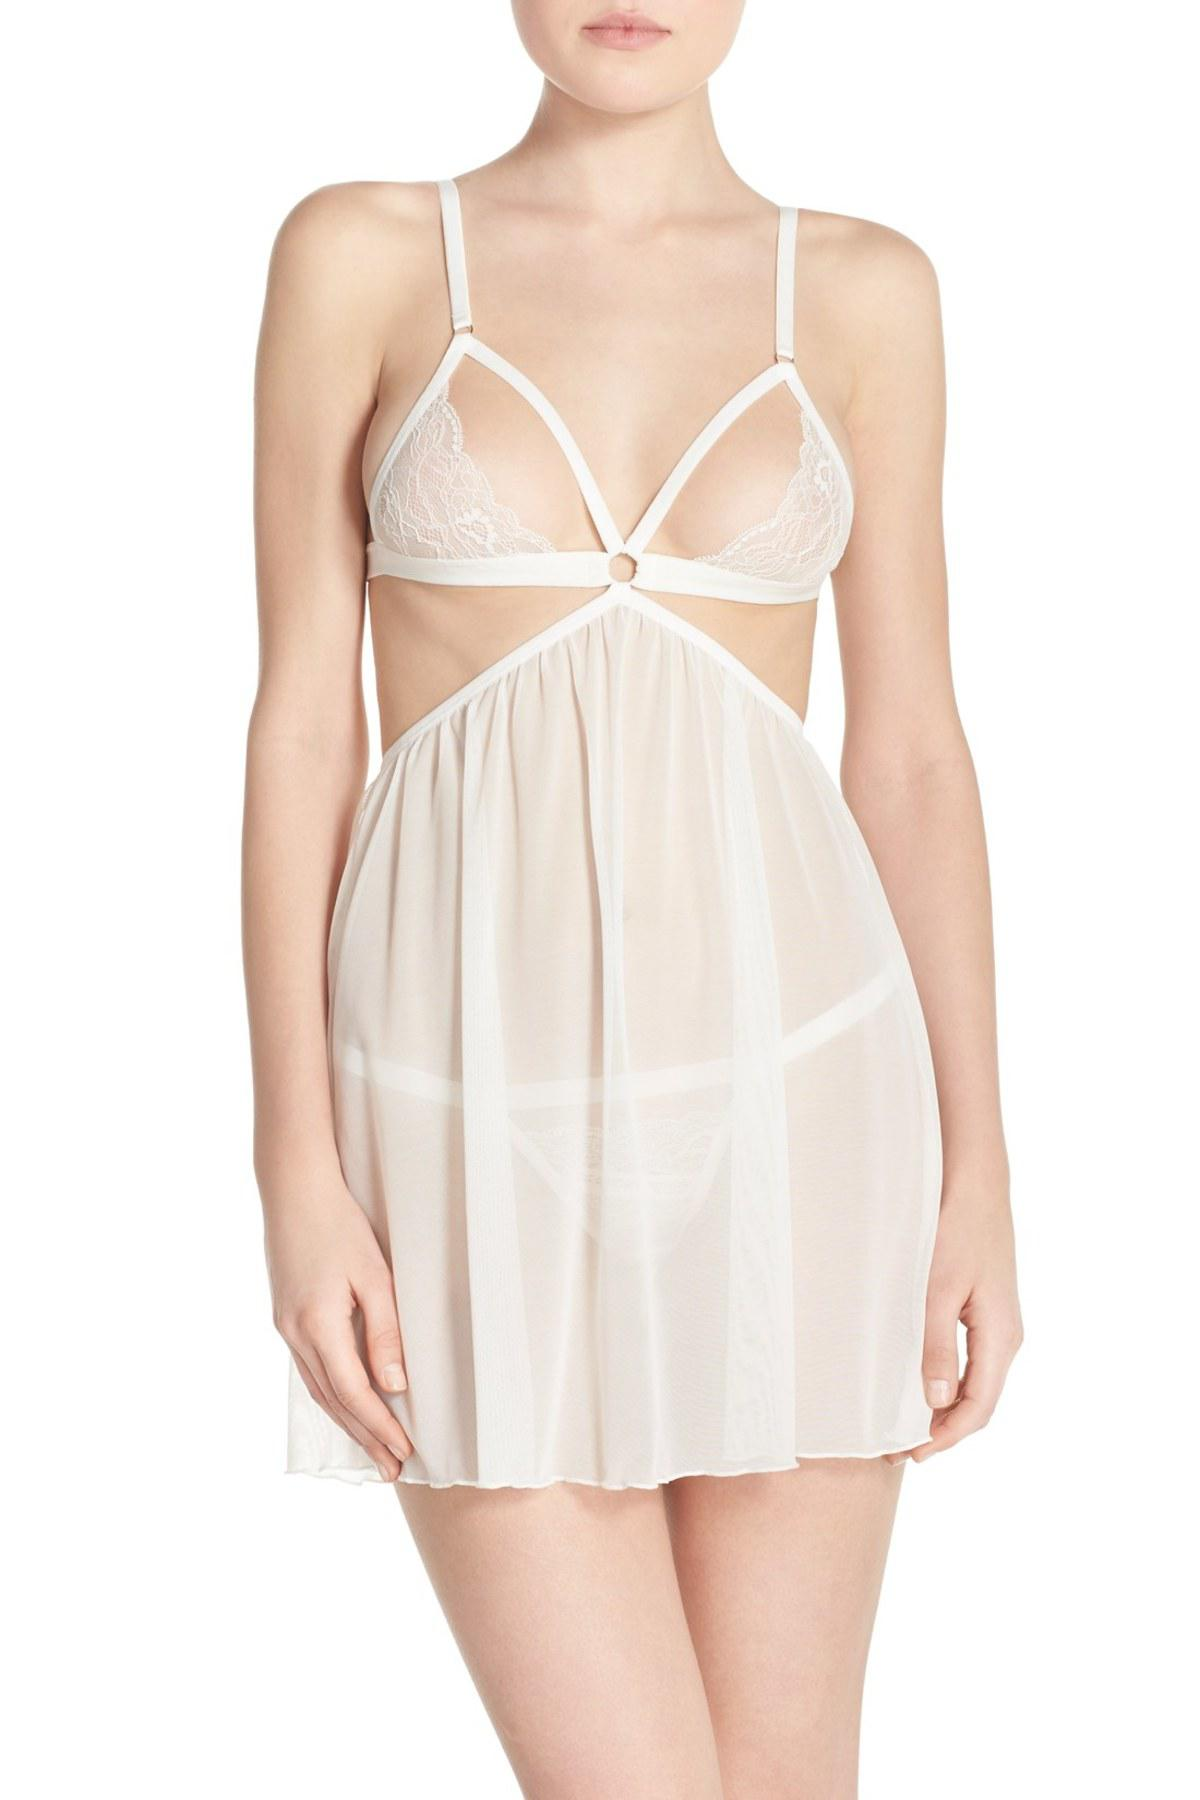 4739d39bc9f0 Lyst - Honeydew Intimates Lucy Open Cup Babydoll & G-string - 2 ...